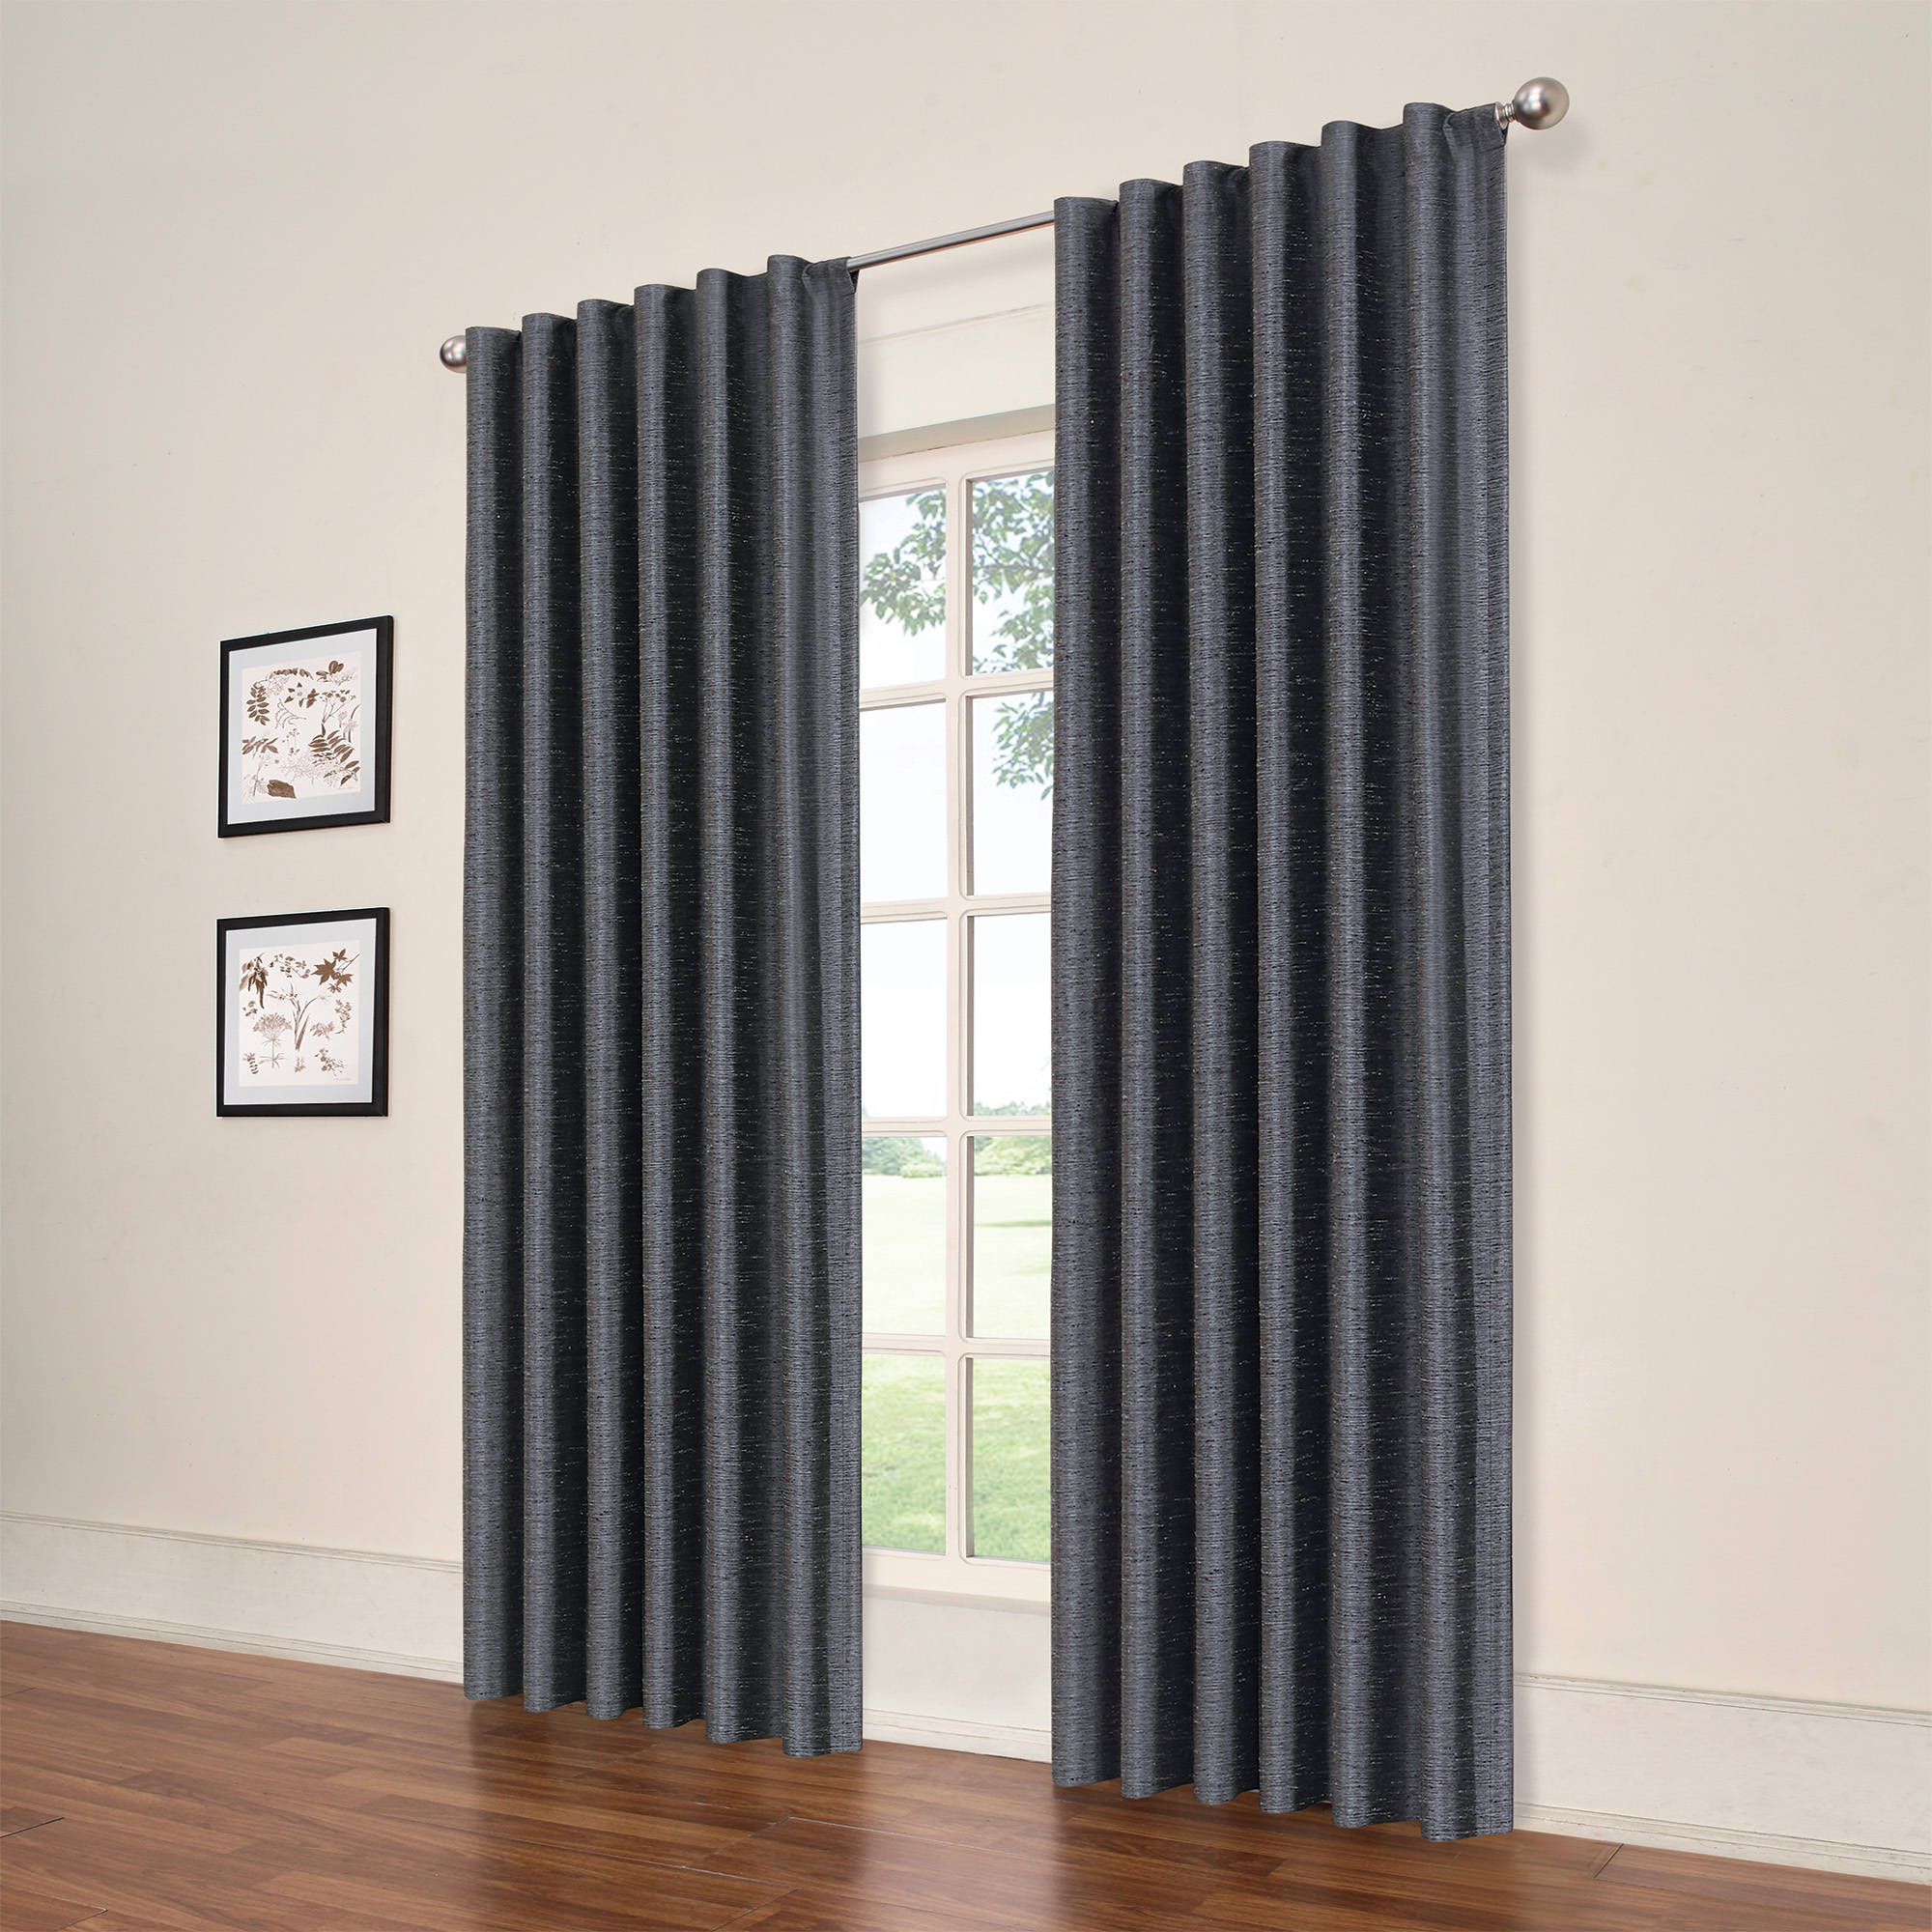 Delightful Eclipse Symphony Blackout Window Curtain Panel   Walmart.com